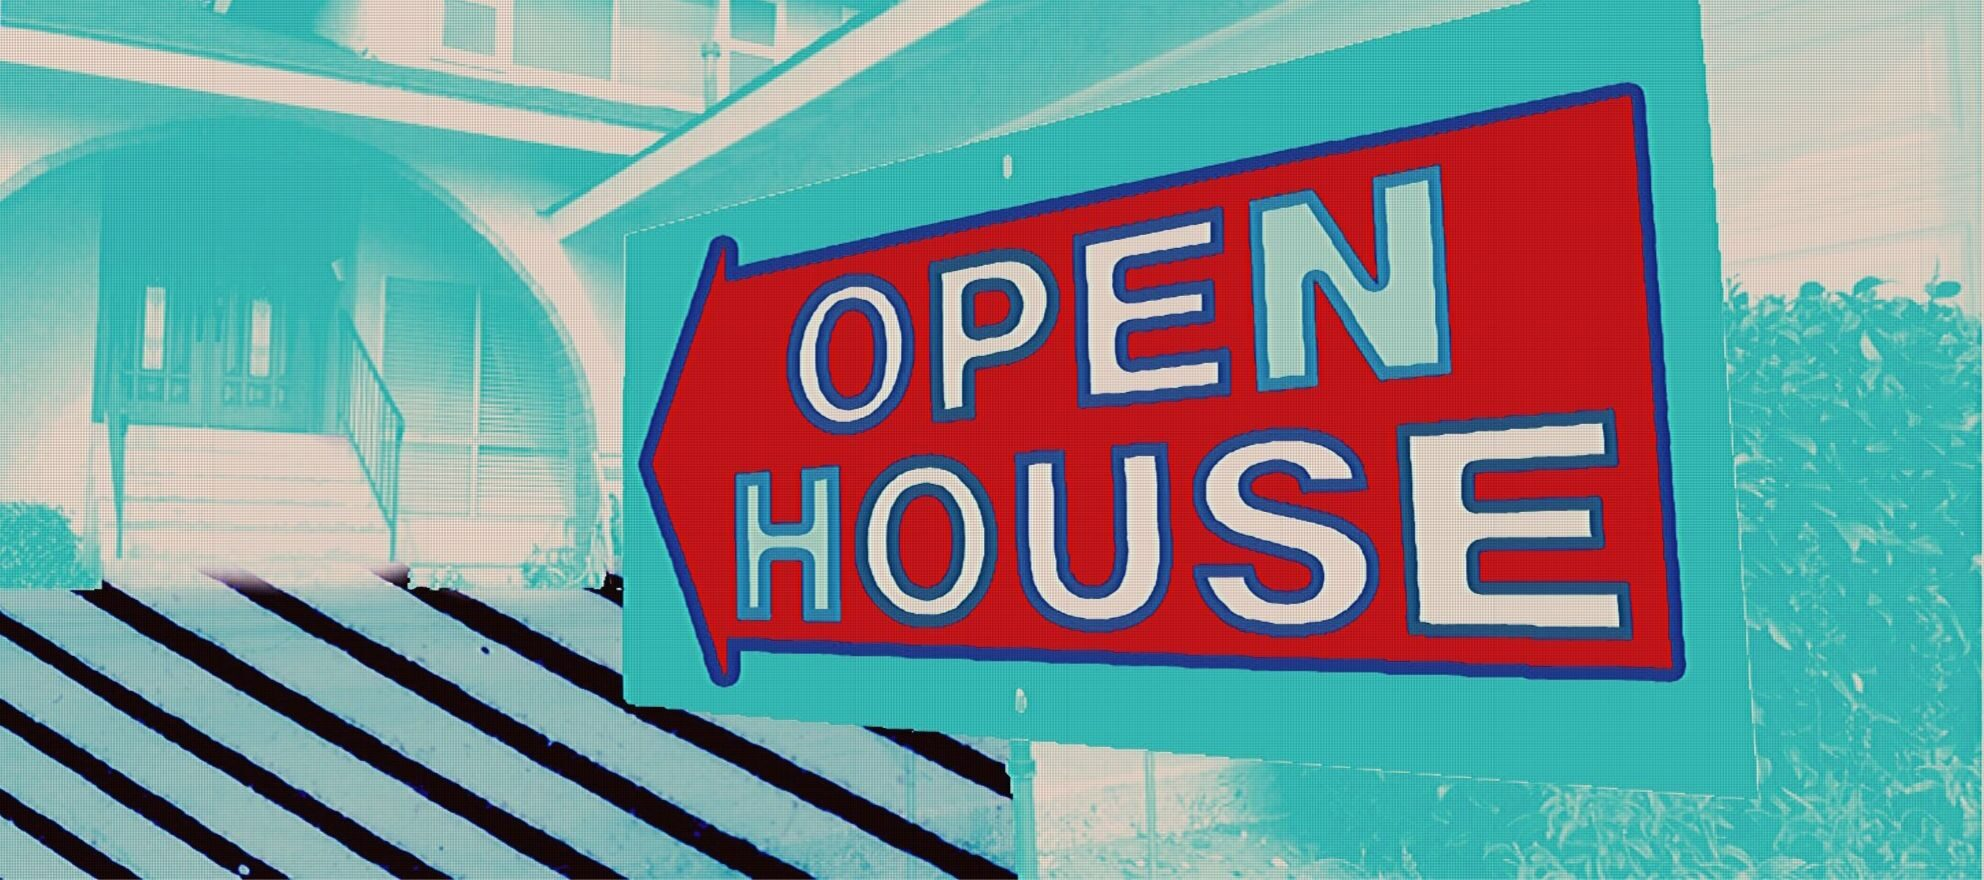 Are open houses worth it? How to ensure they're not time-wasters